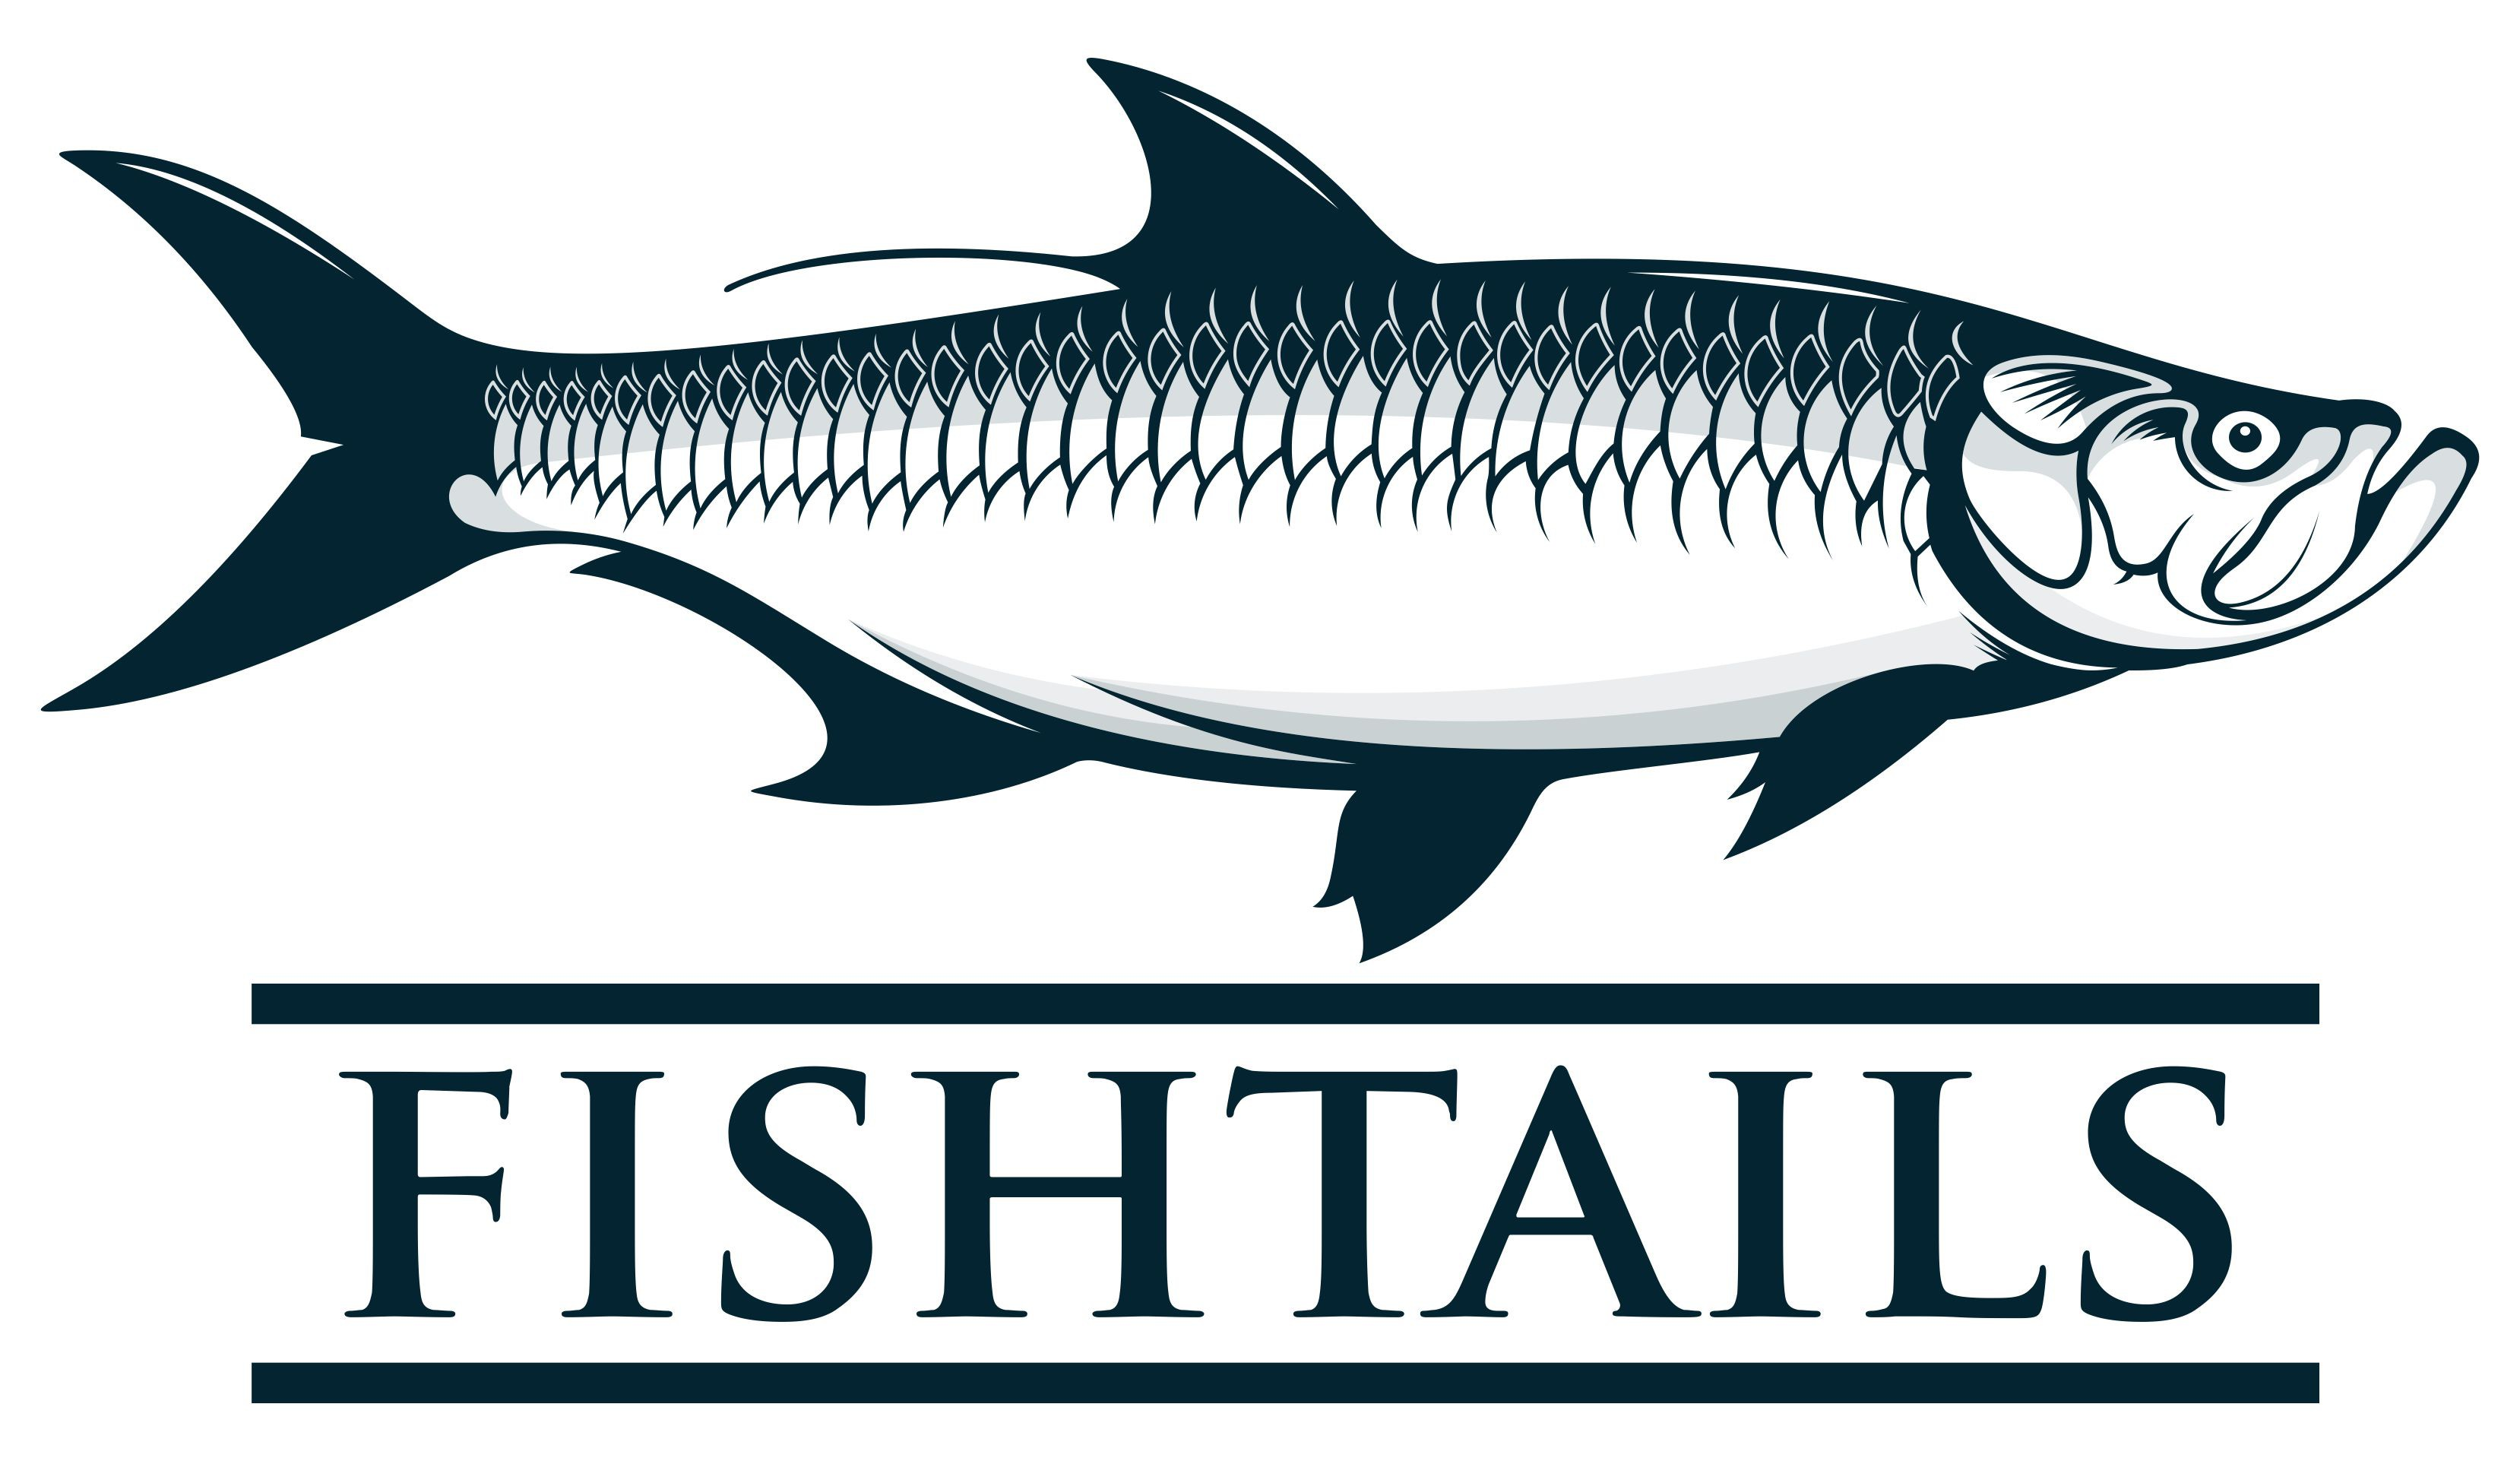 Design a logo for a fishing TV show!